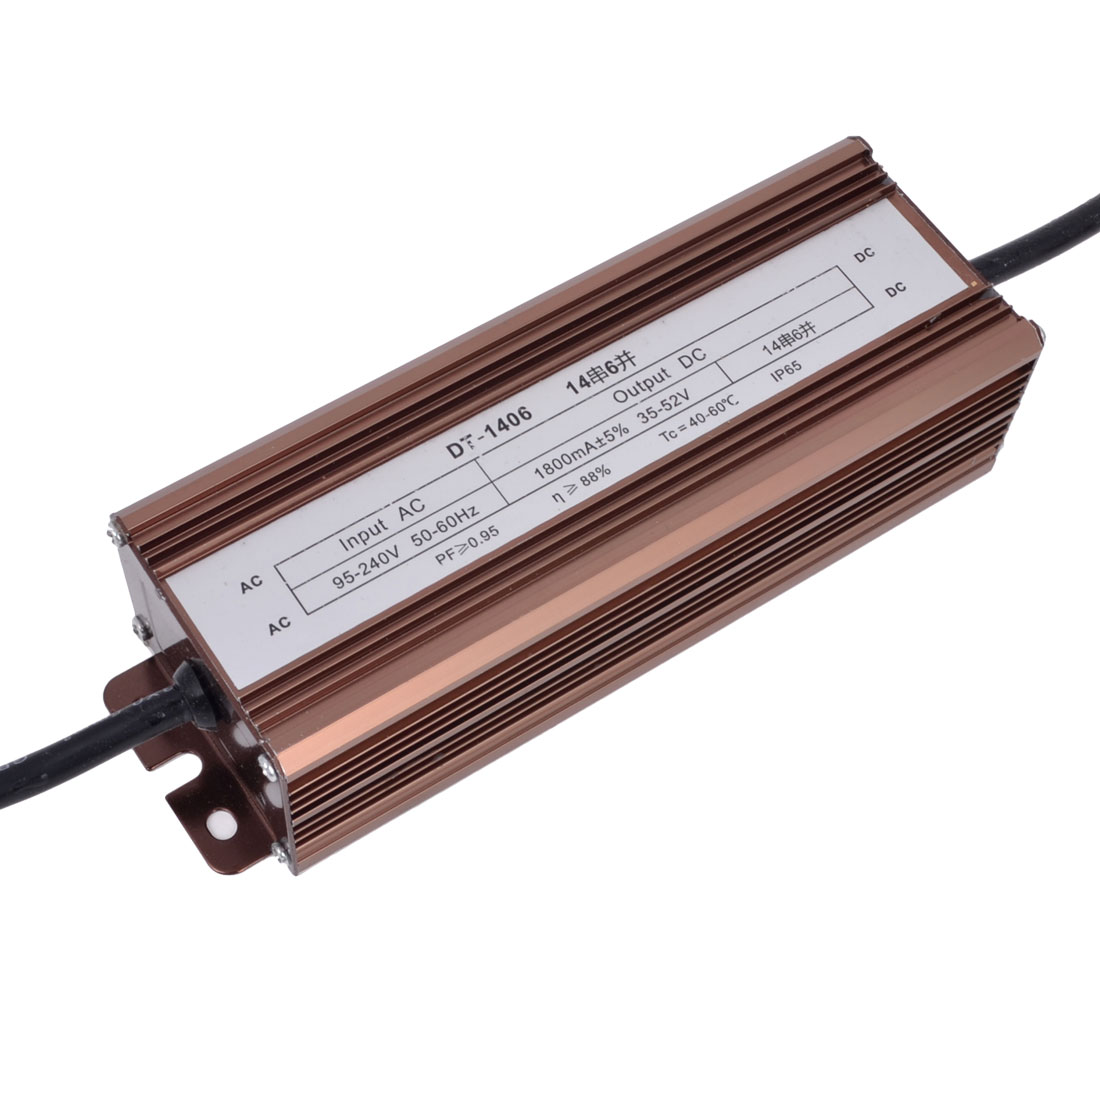 AC 95-240V to DC 35-52V Waterproof LED Driver Transformer Adapter 84W